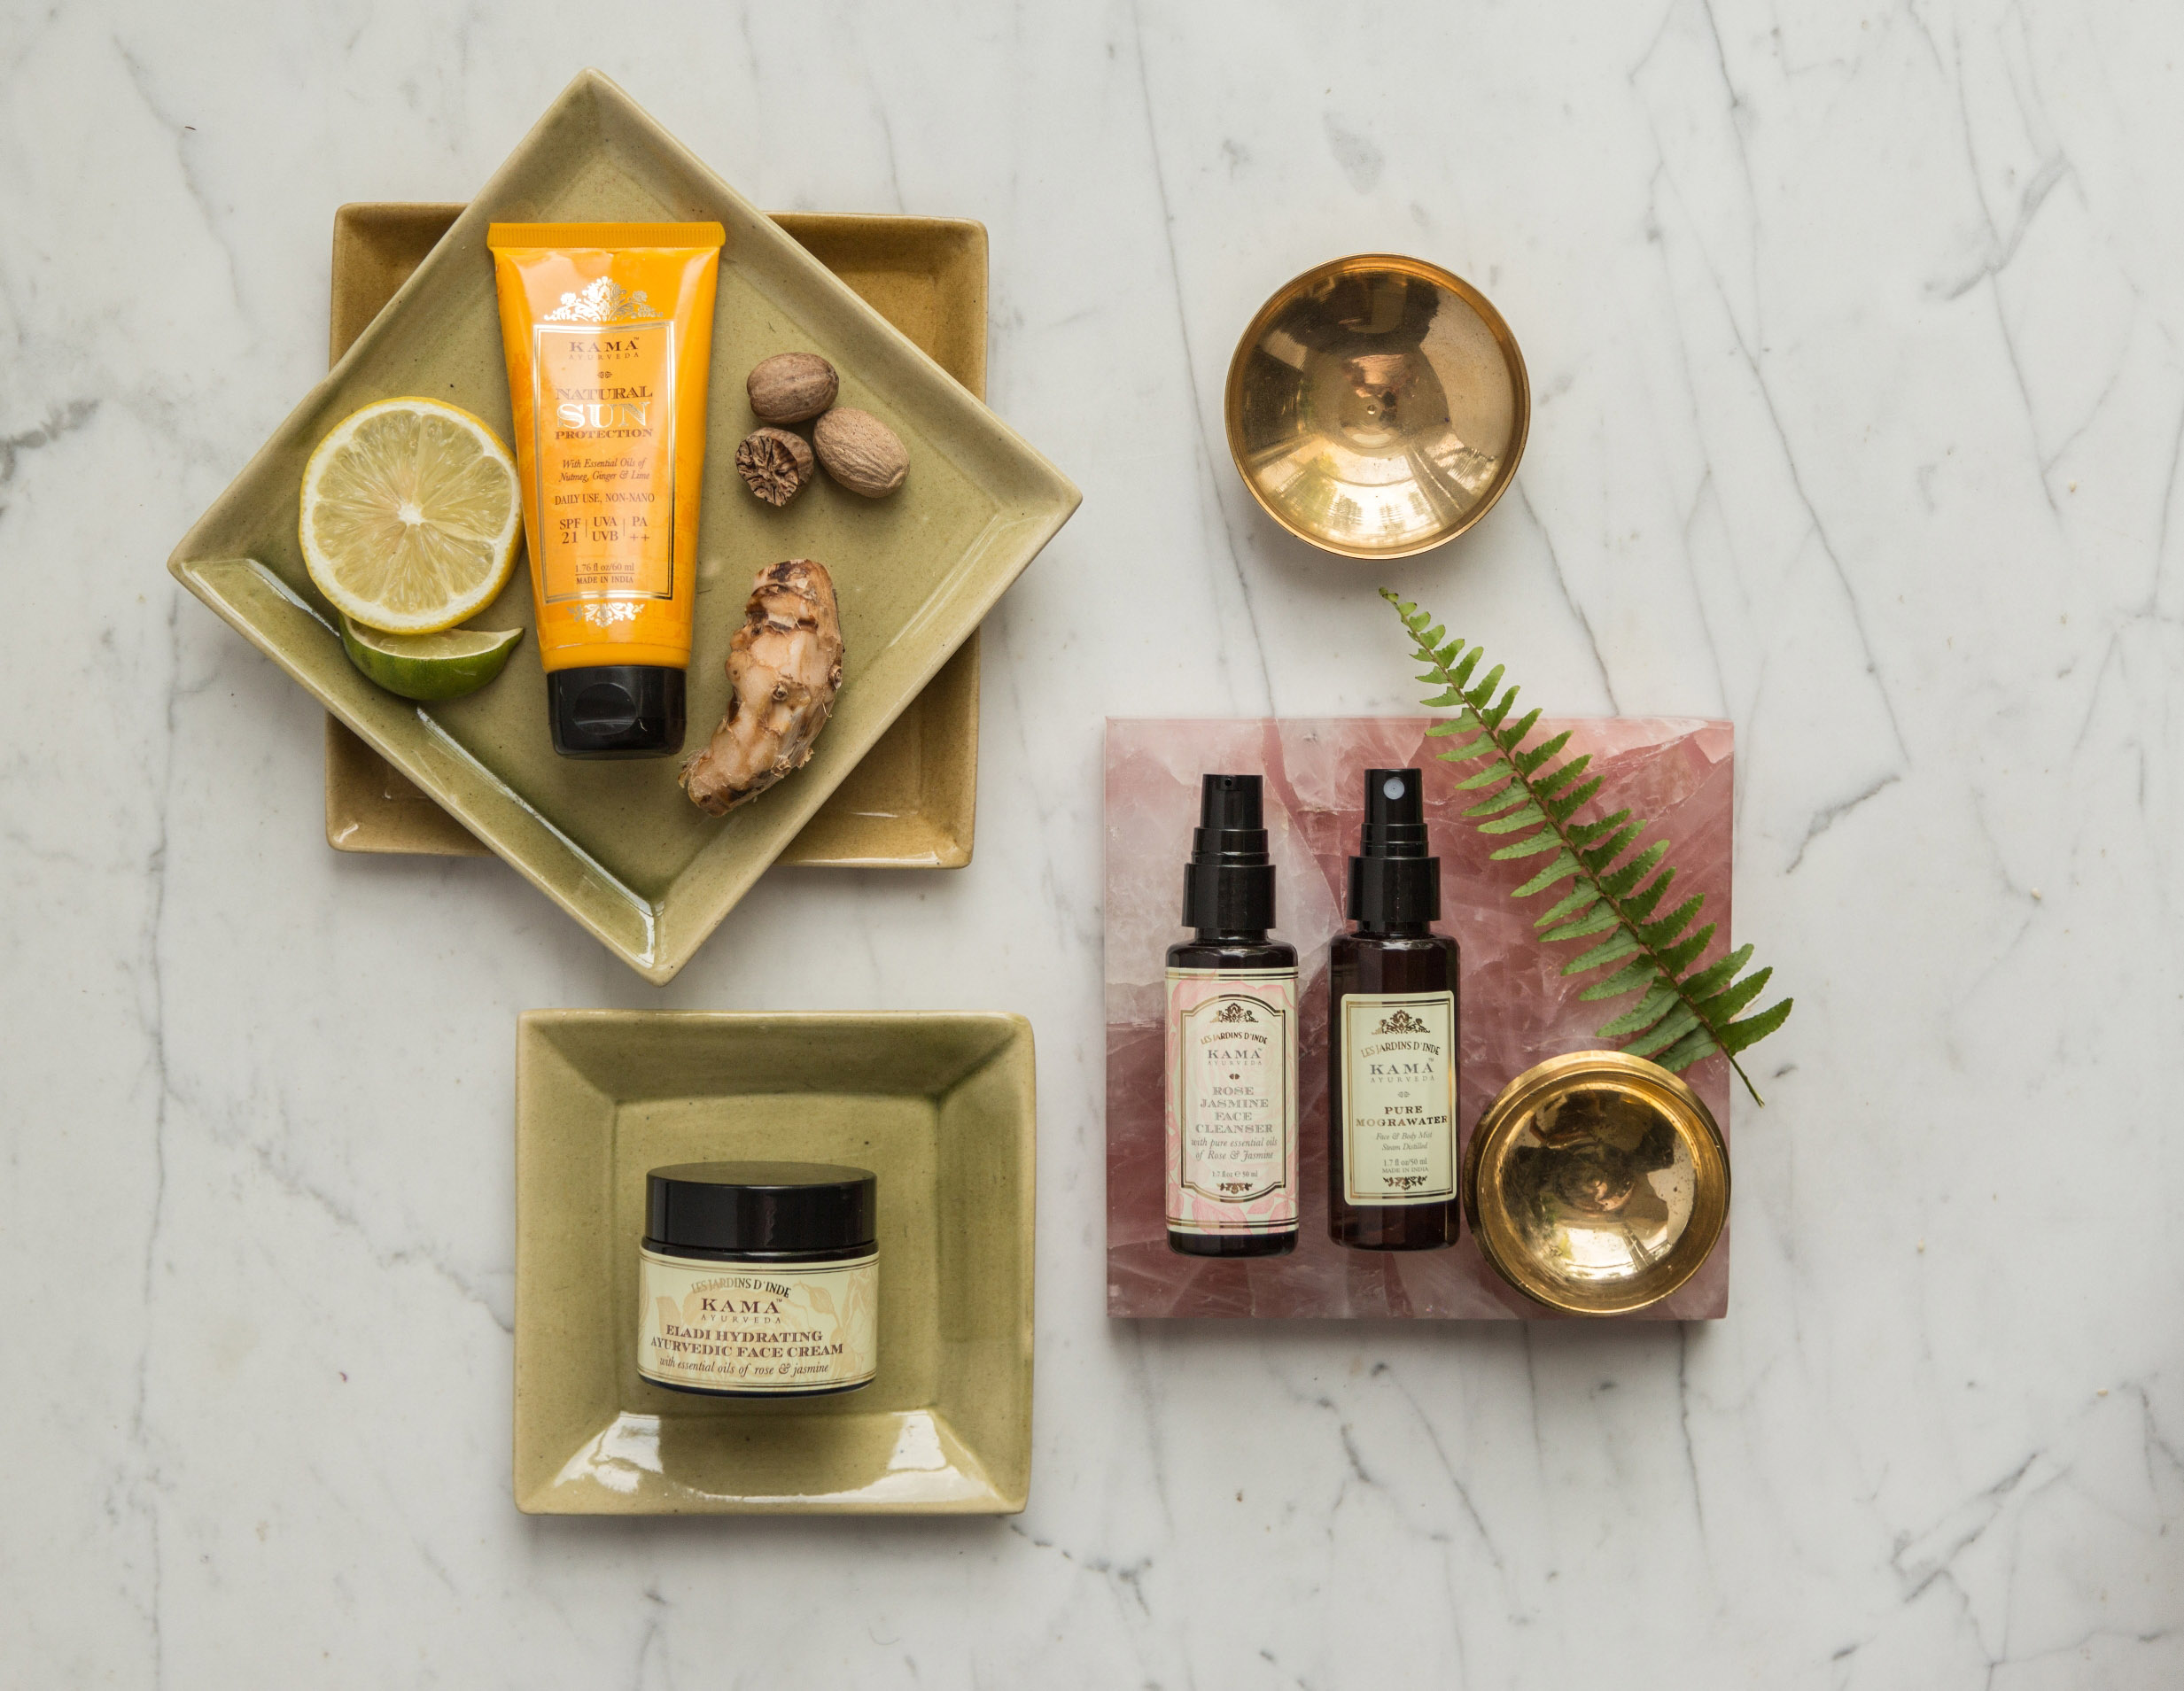 kama ayurveda, beauty, skin care, all natural sunscreen